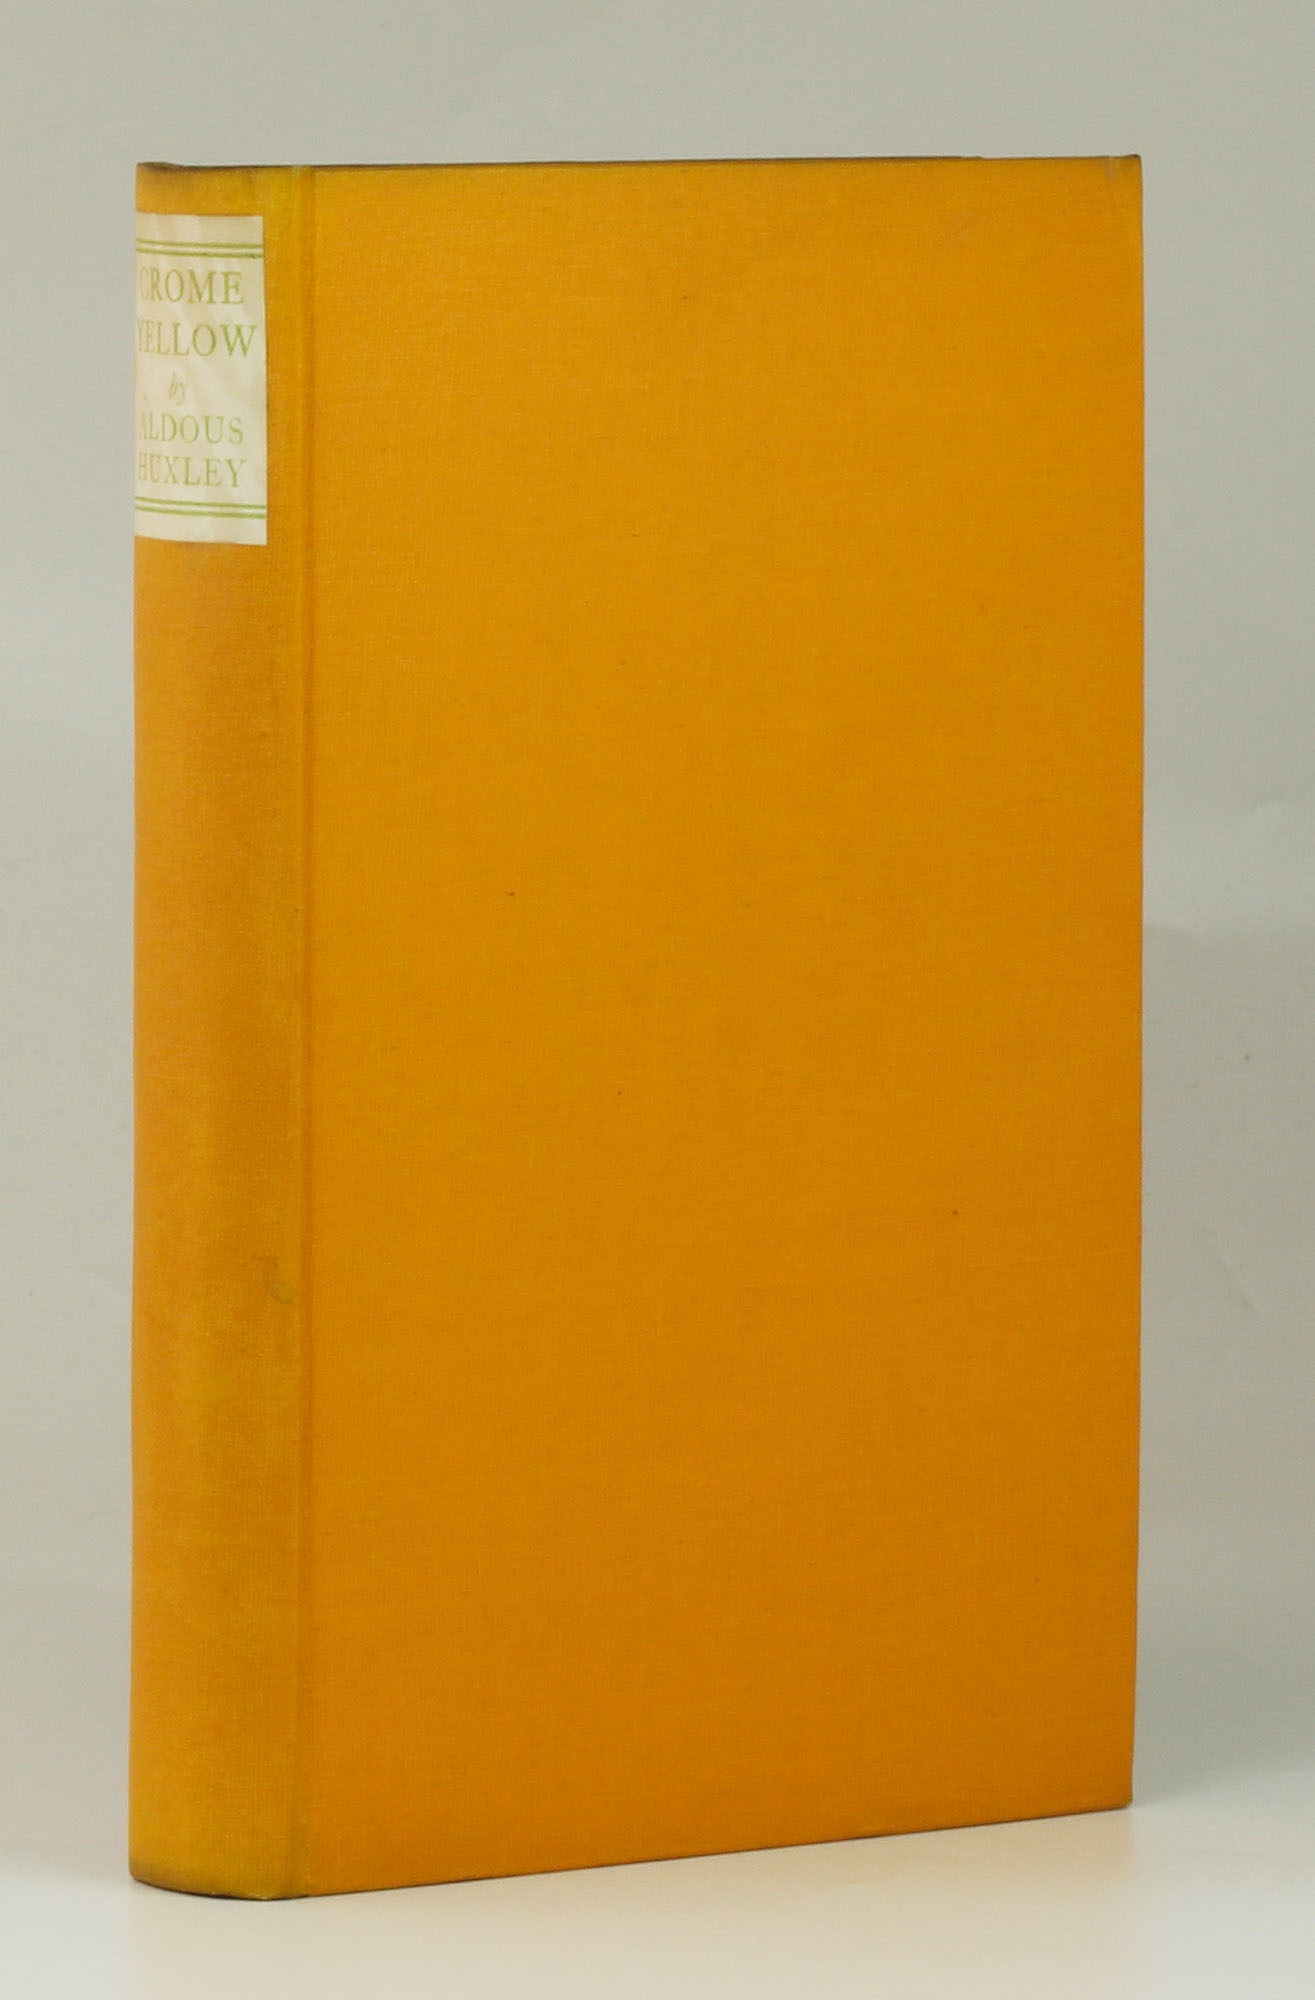 review of crome yellow by aldous Click to read more about editions: crome yellow by aldous huxley librarything is a cataloging and social networking site for booklovers.